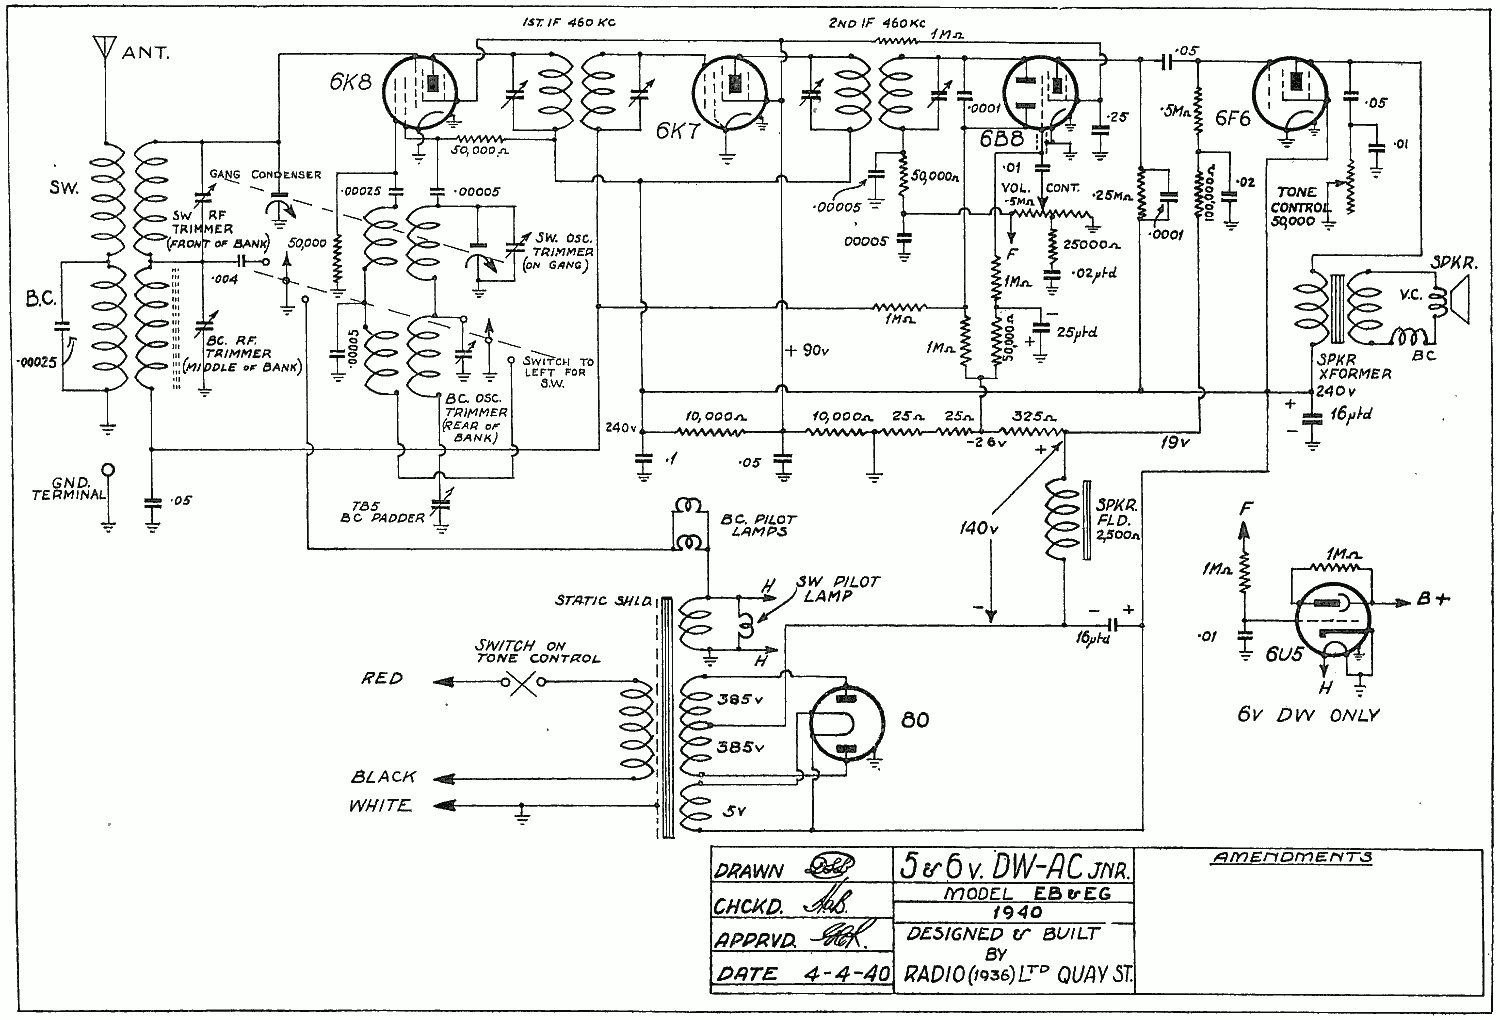 1940 Ultimate EB Schematic